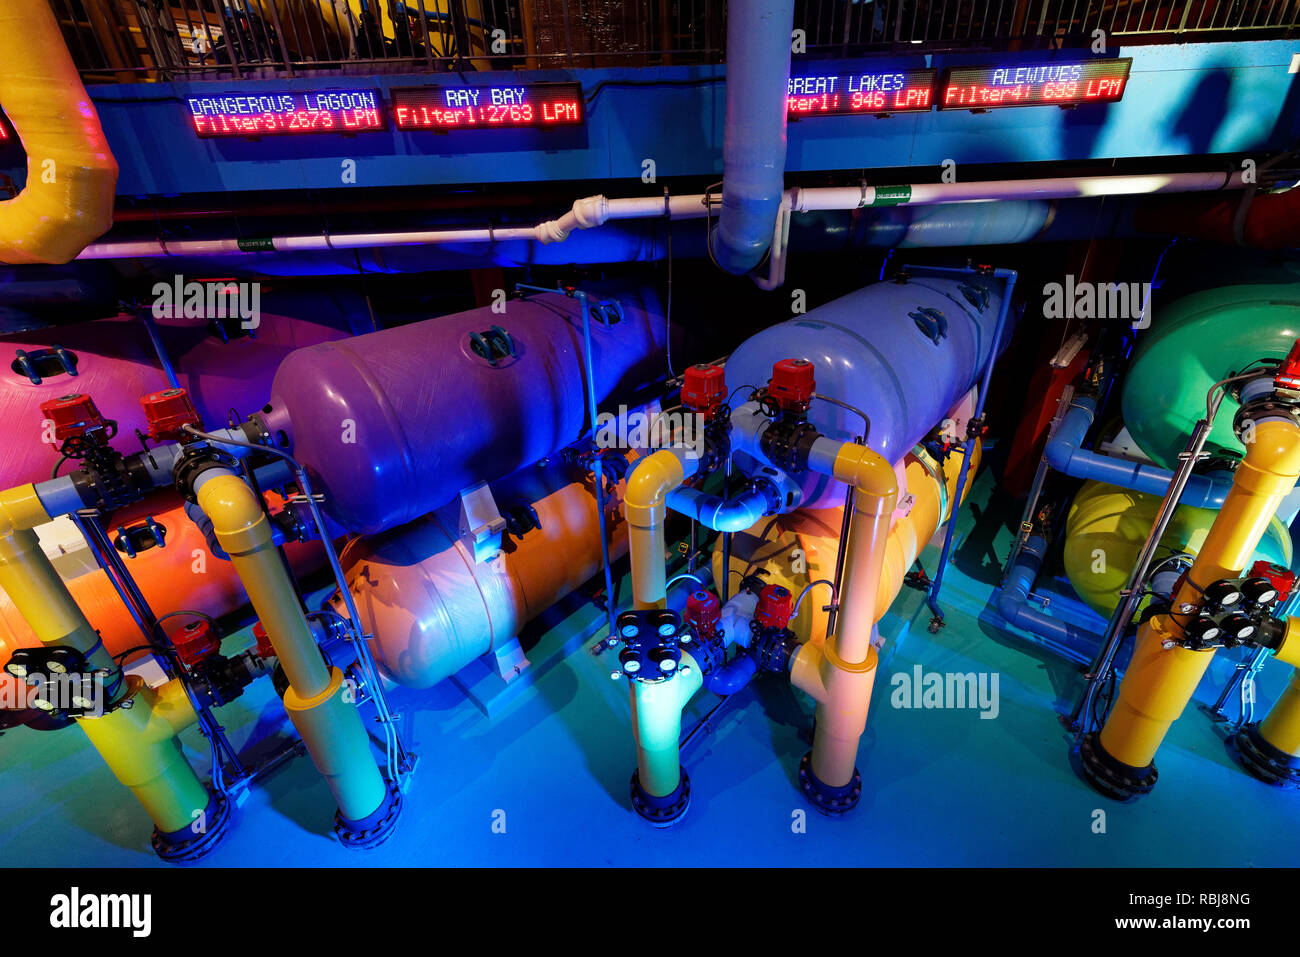 The pumps and filtration equipment for the tanks inside Ripley's Aquarium of Canada, Toronto, Ontario - Stock Image